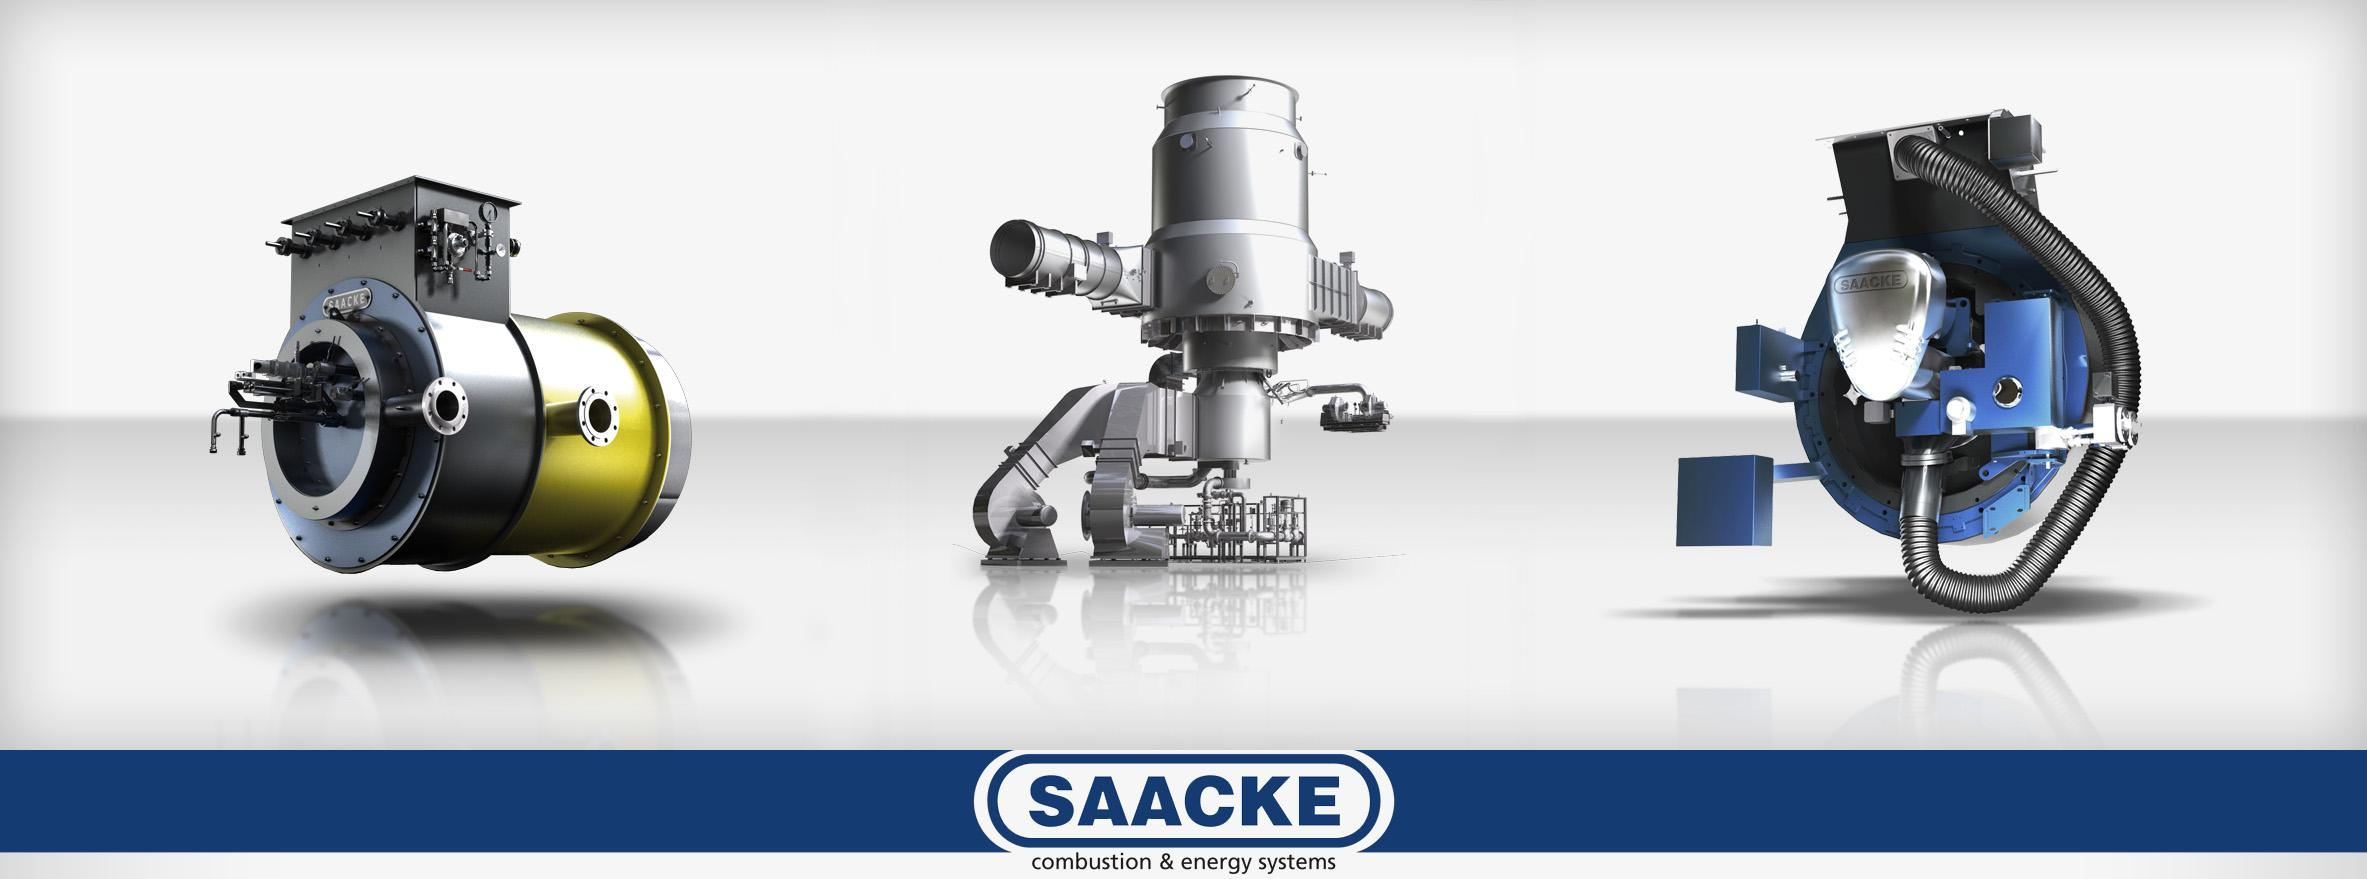 SAACKE 3D compressed